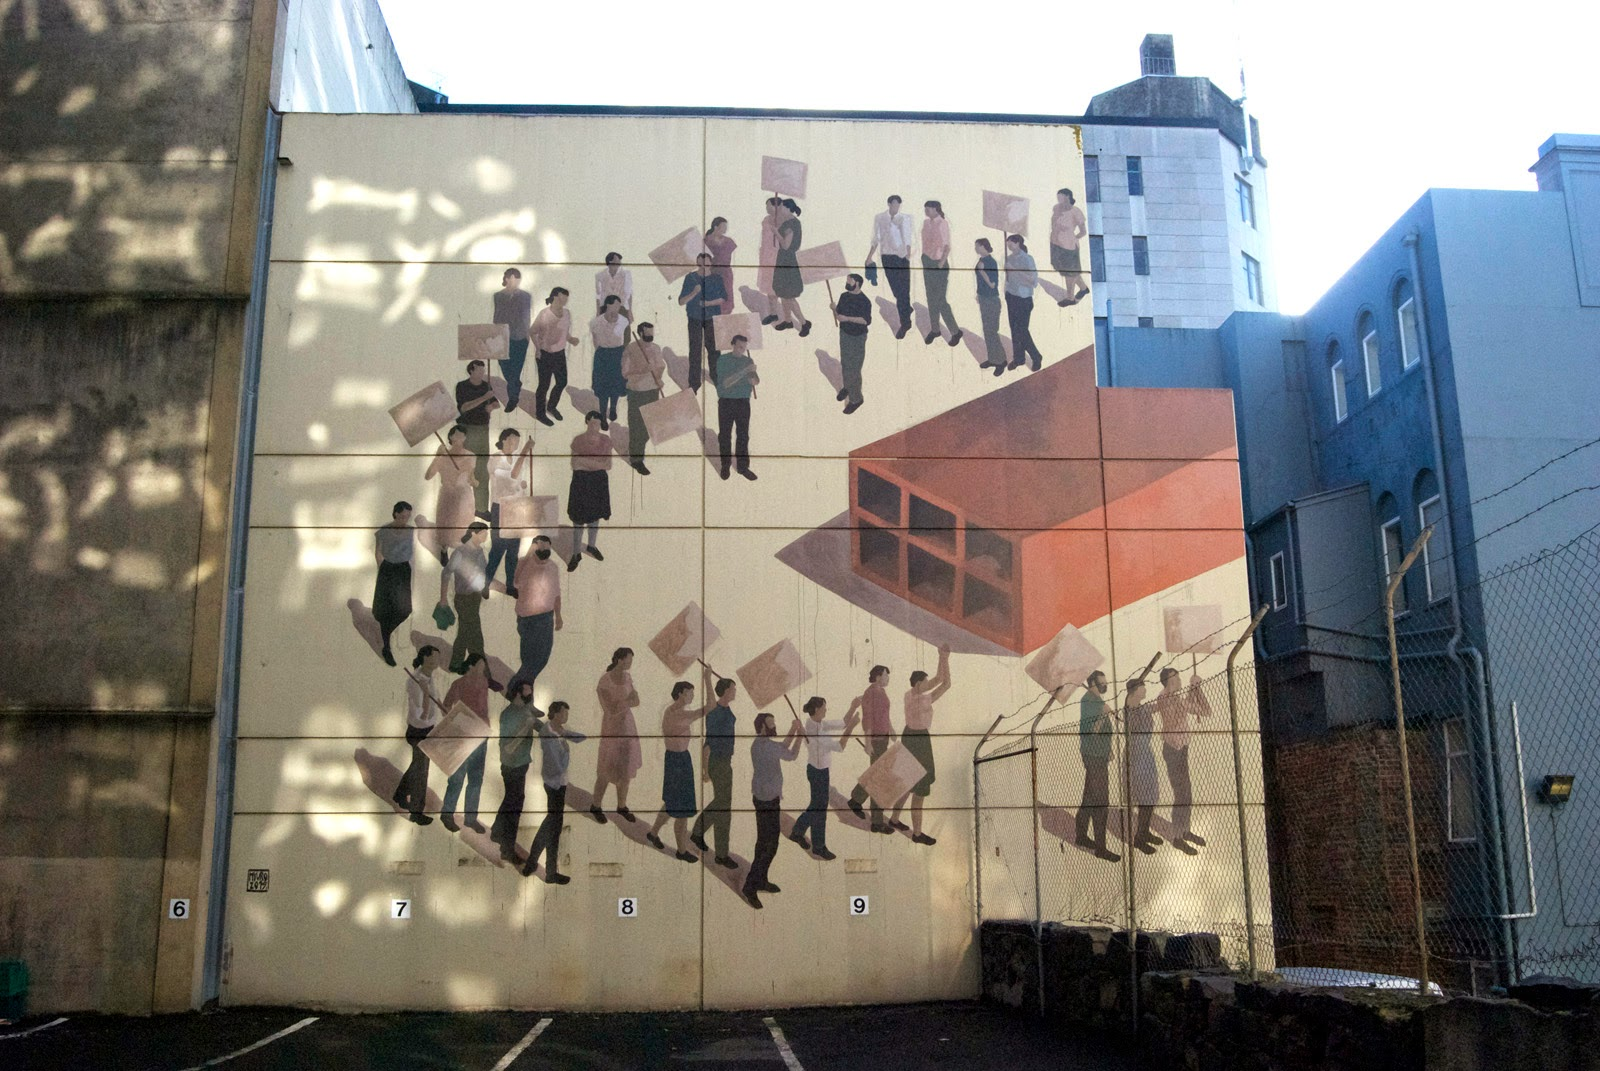 Our friend Hyuro is currently in New Zealand where she spent the last few days working on new artworks somewhere on the streets of Dunedin for the excellent Dunedin Street Art Project.